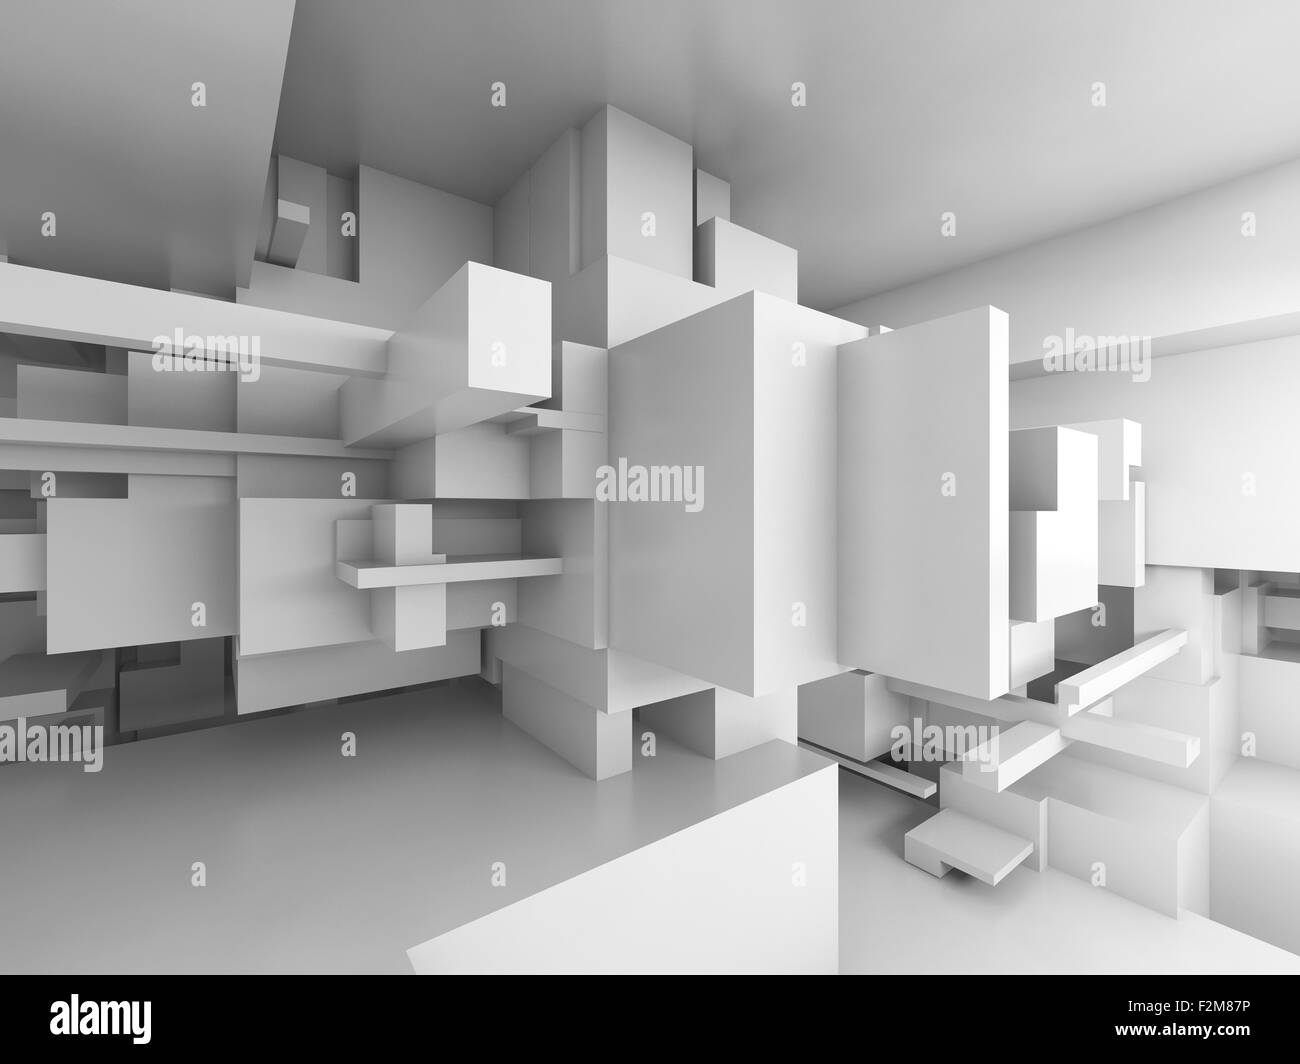 Abstract empty white room interior with chaotic cubes constructions, high-tech concept, 3d illustration - Stock Image